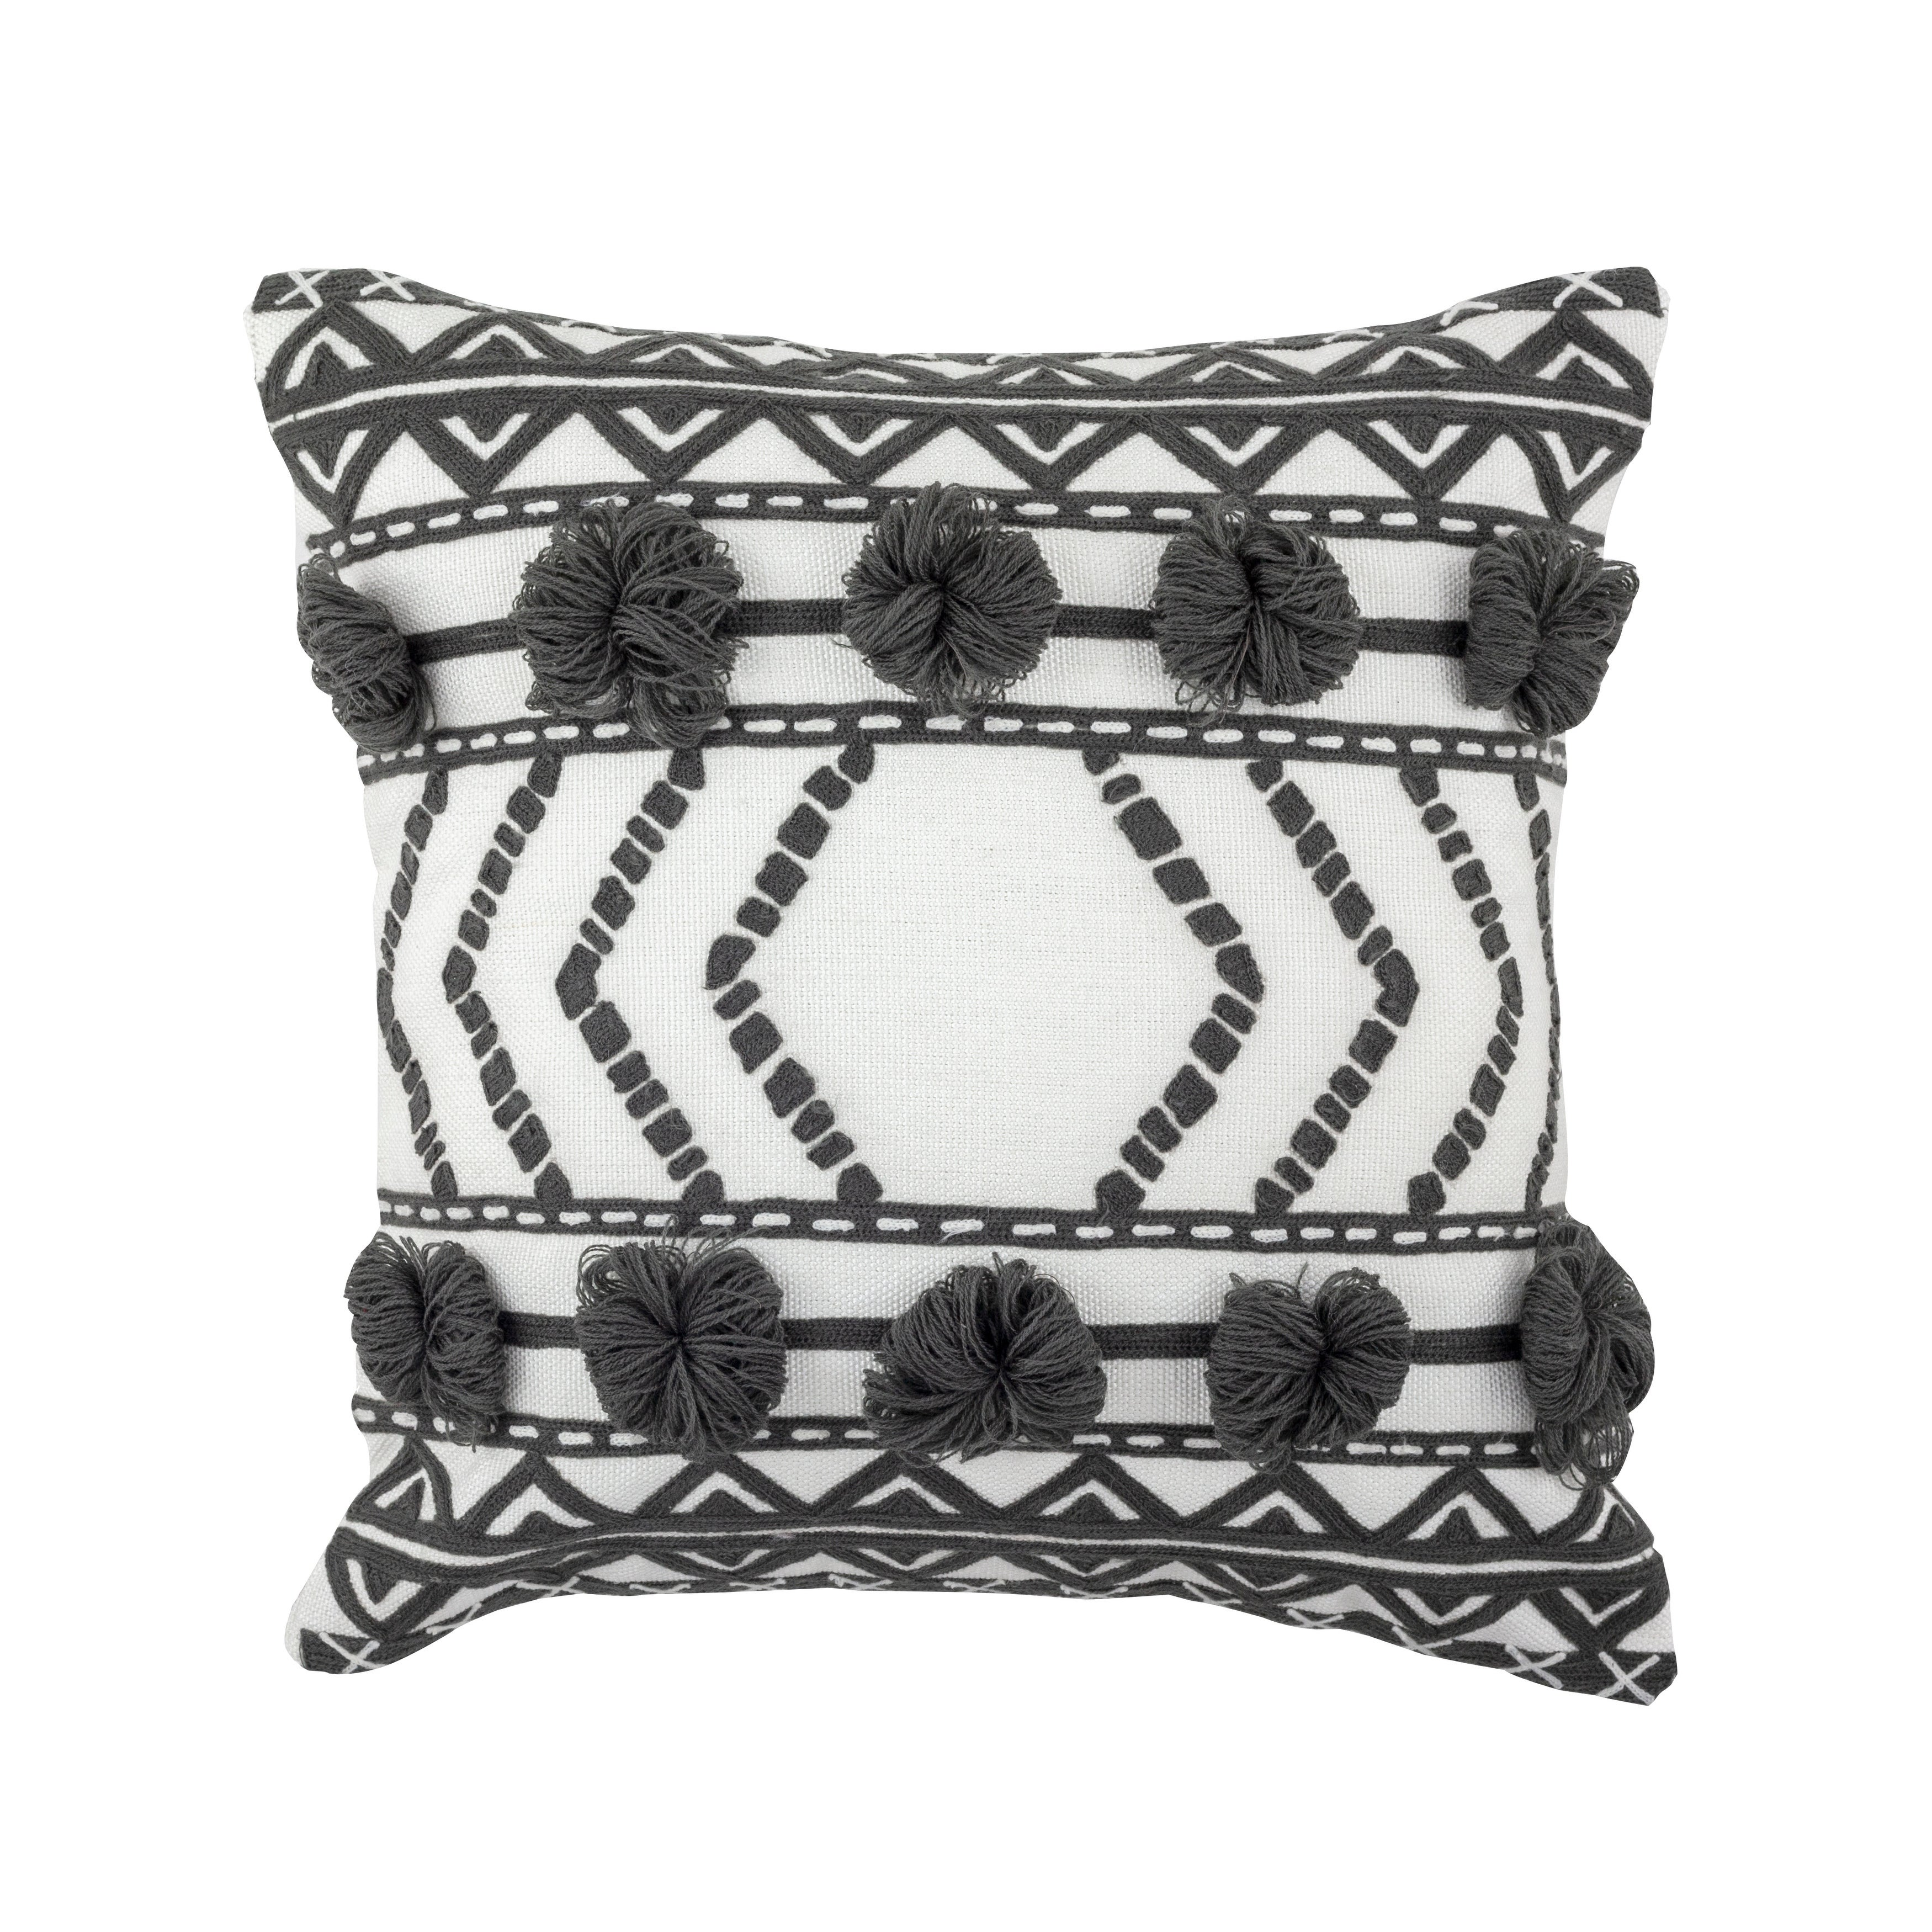 Embroidered Thelma Outdoor Pillow